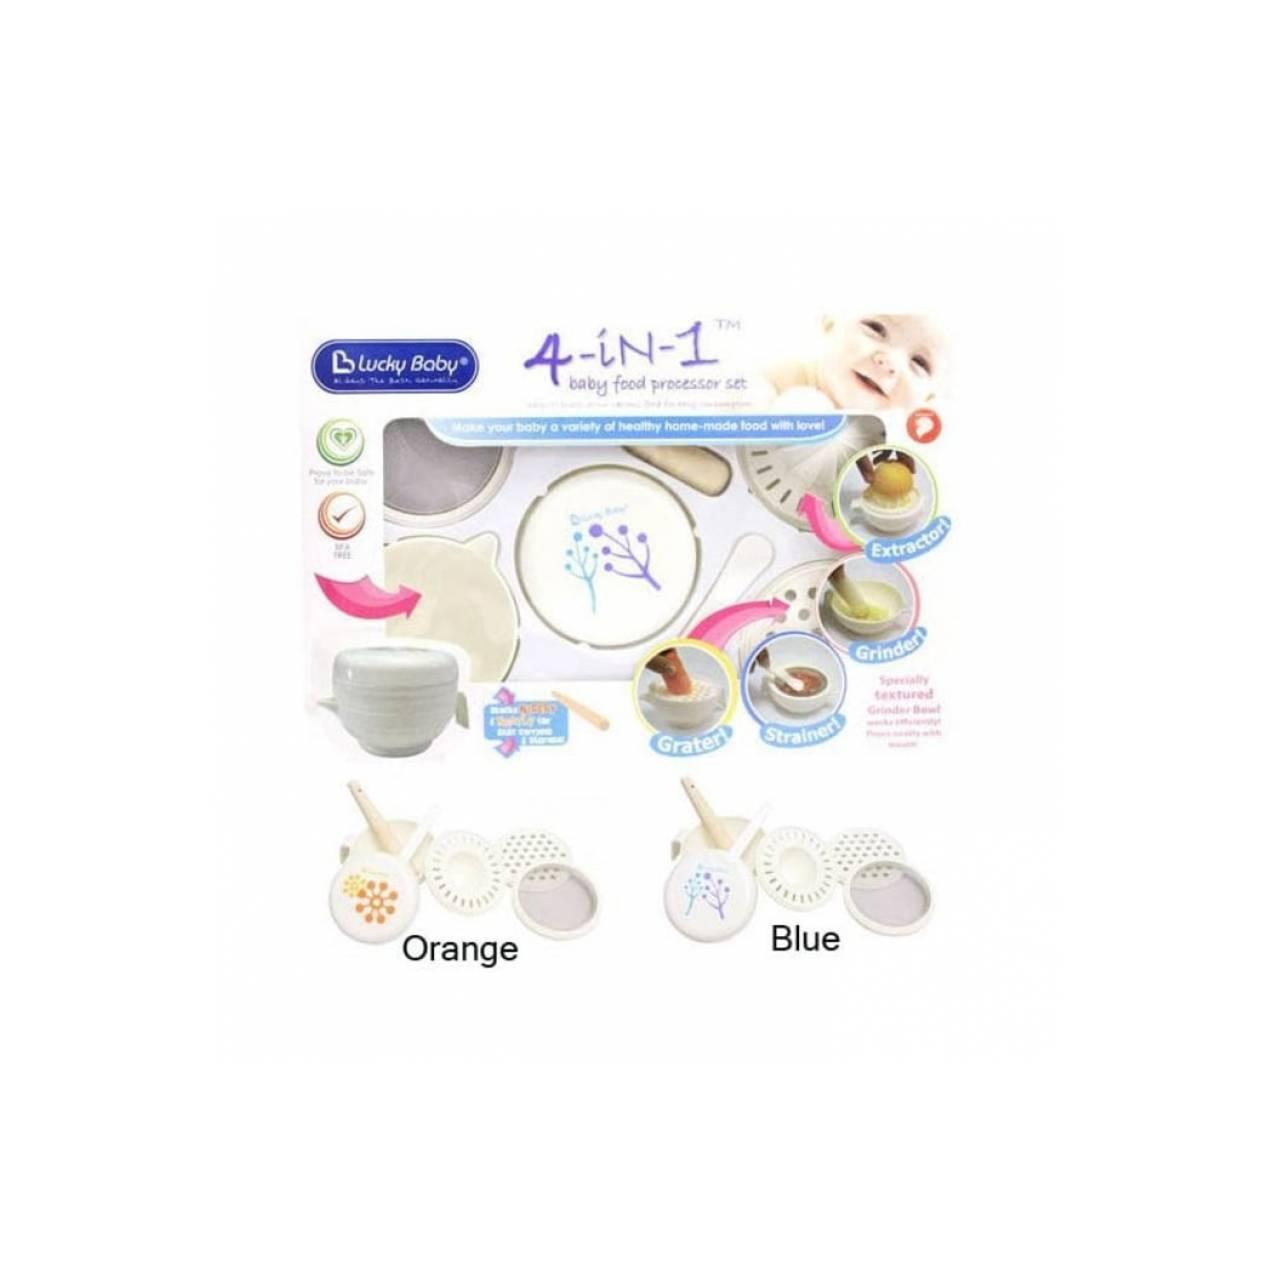 (Baby Club Itc Bsd) Lucky Baby Food Maker 4-in-1